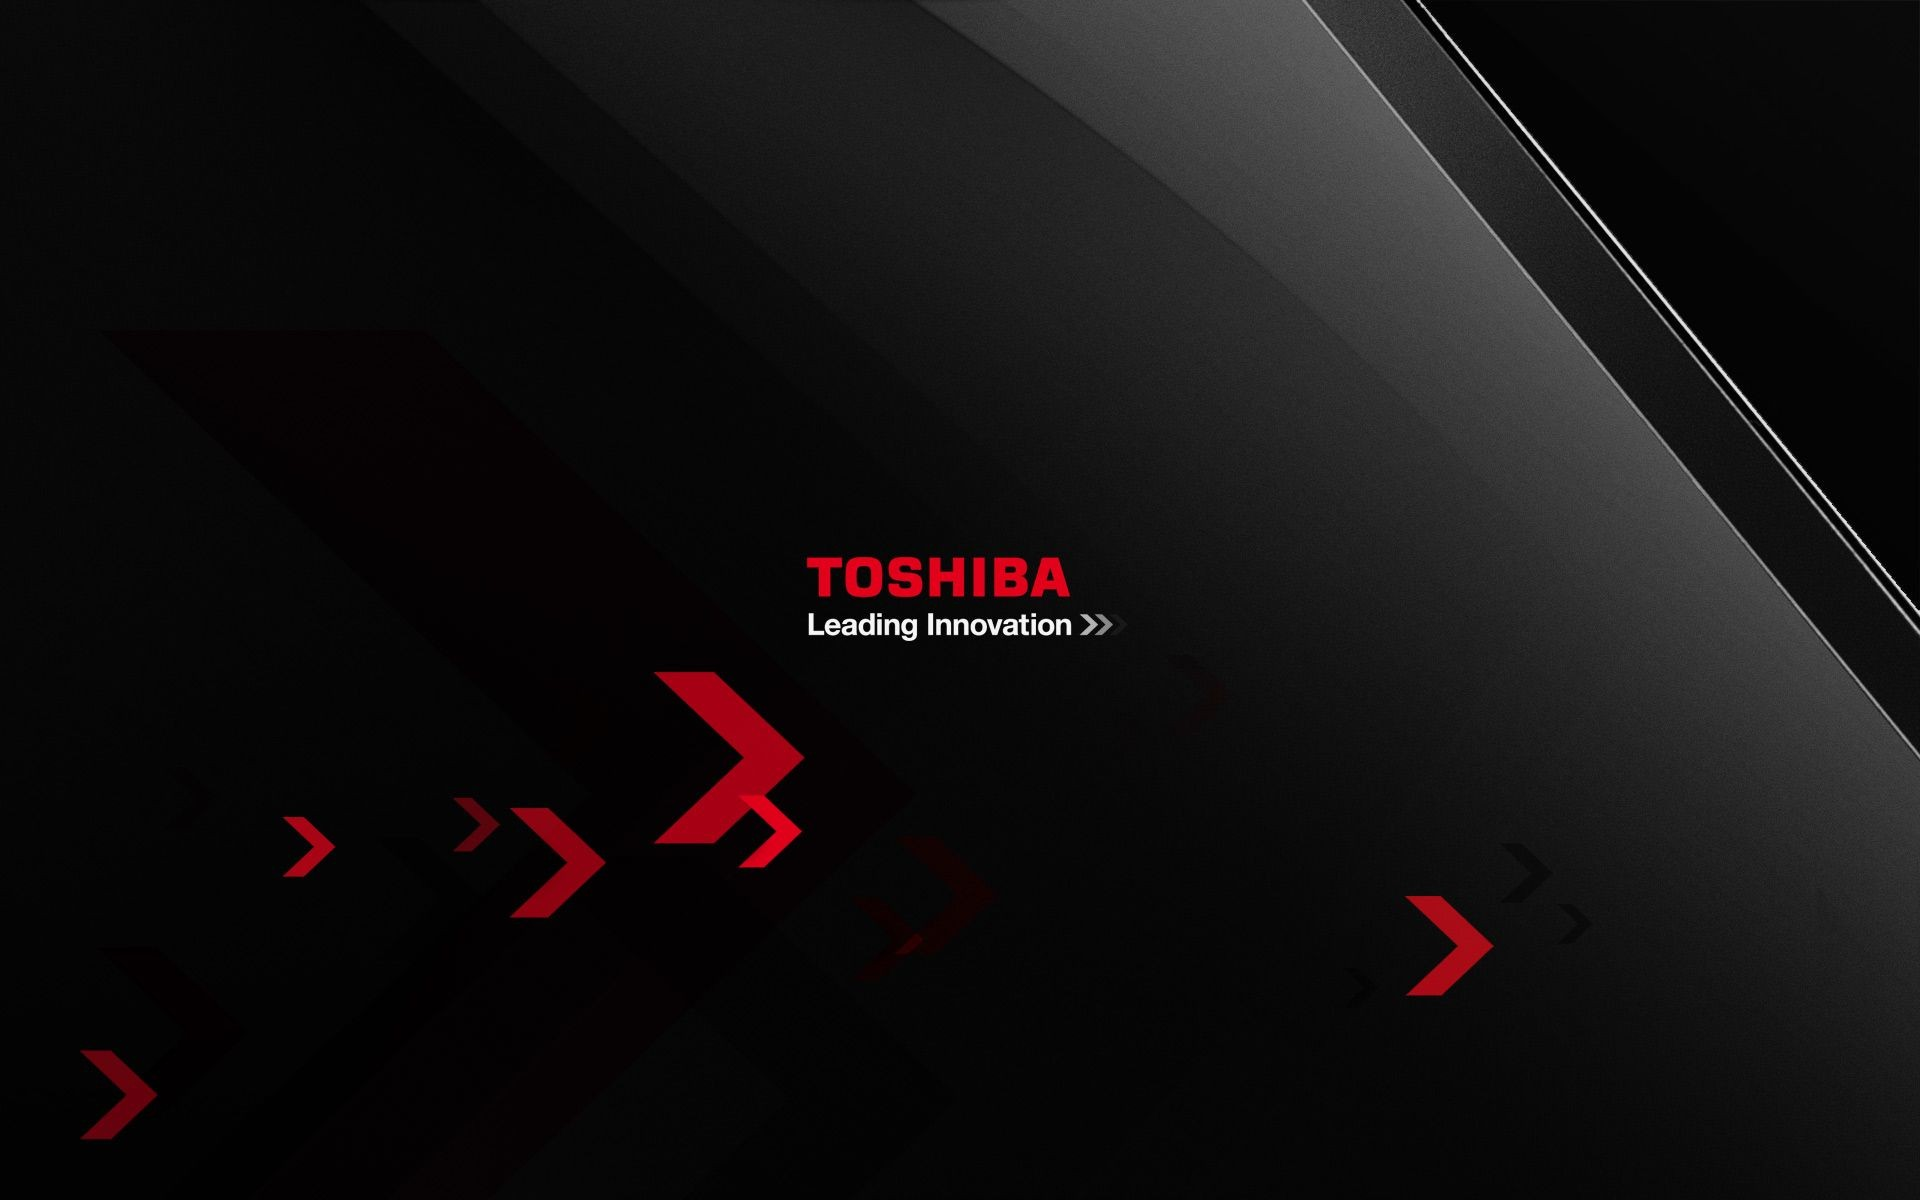 toshiba wallpaper ·① download free cool high resolution backgrounds